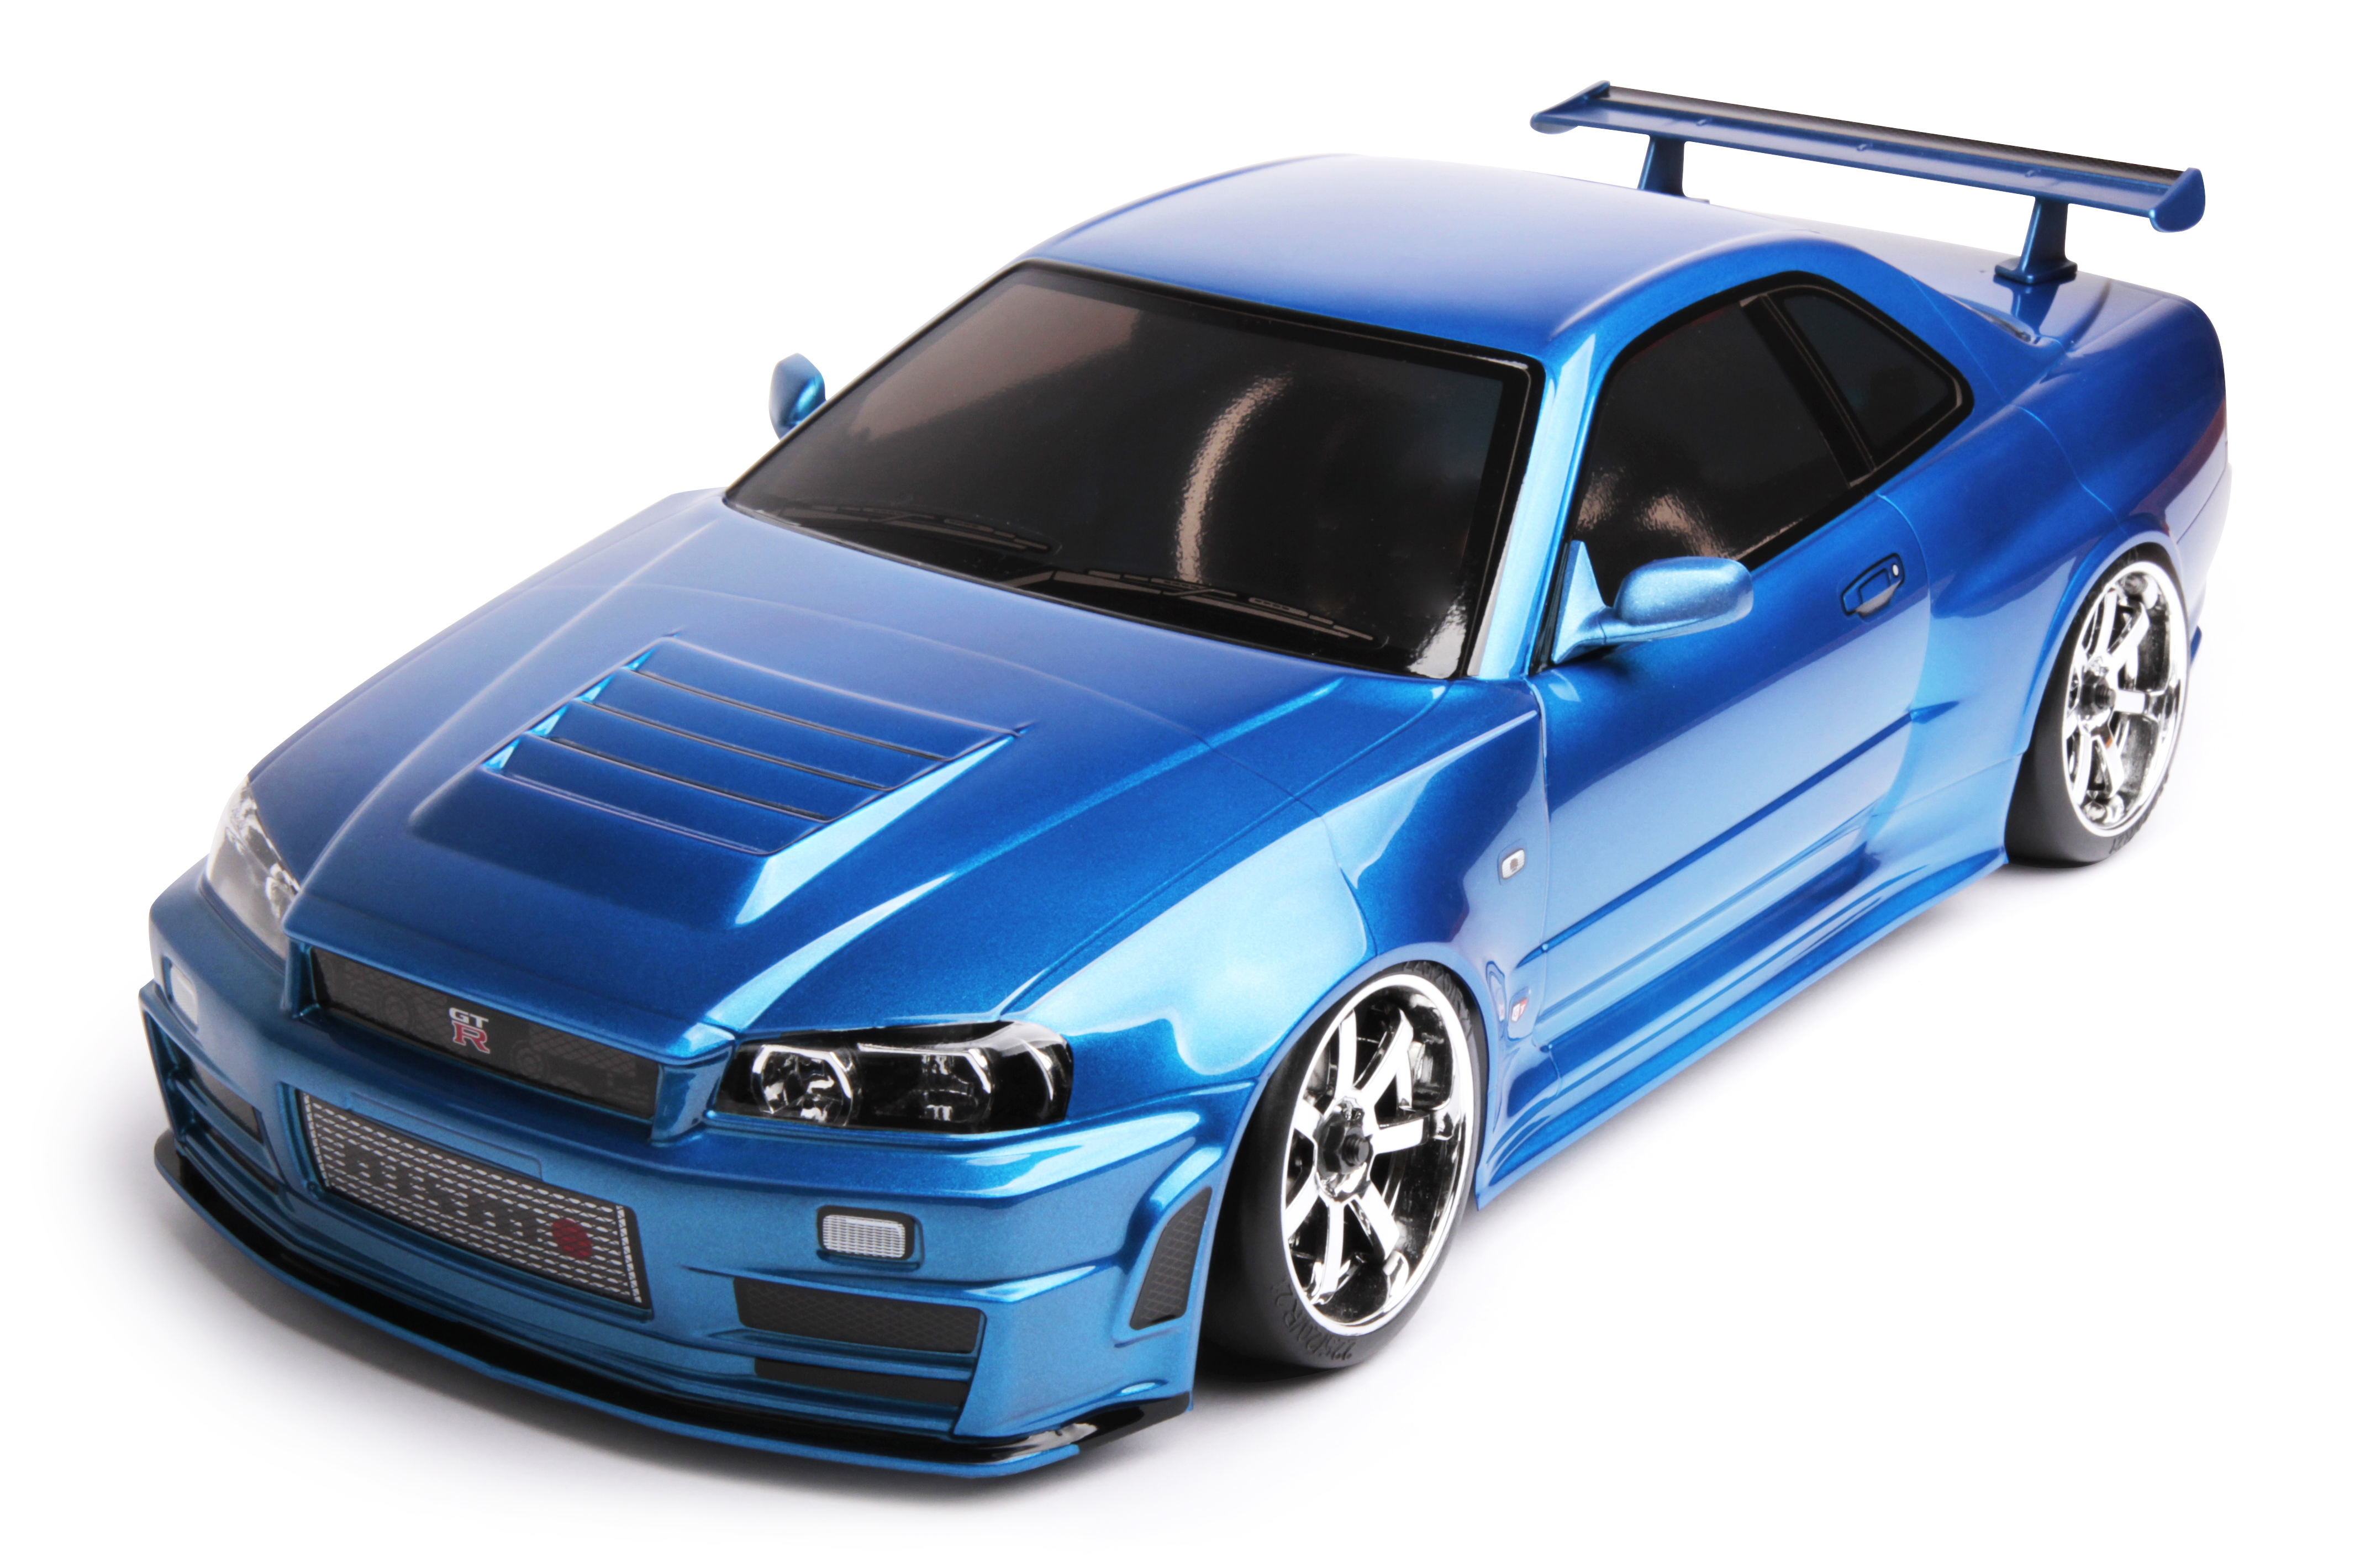 FXX-D 1/10 Scale 2WD RTR Electric Drift Car (2.4G) (brushless) NISSAN R34 GT-R